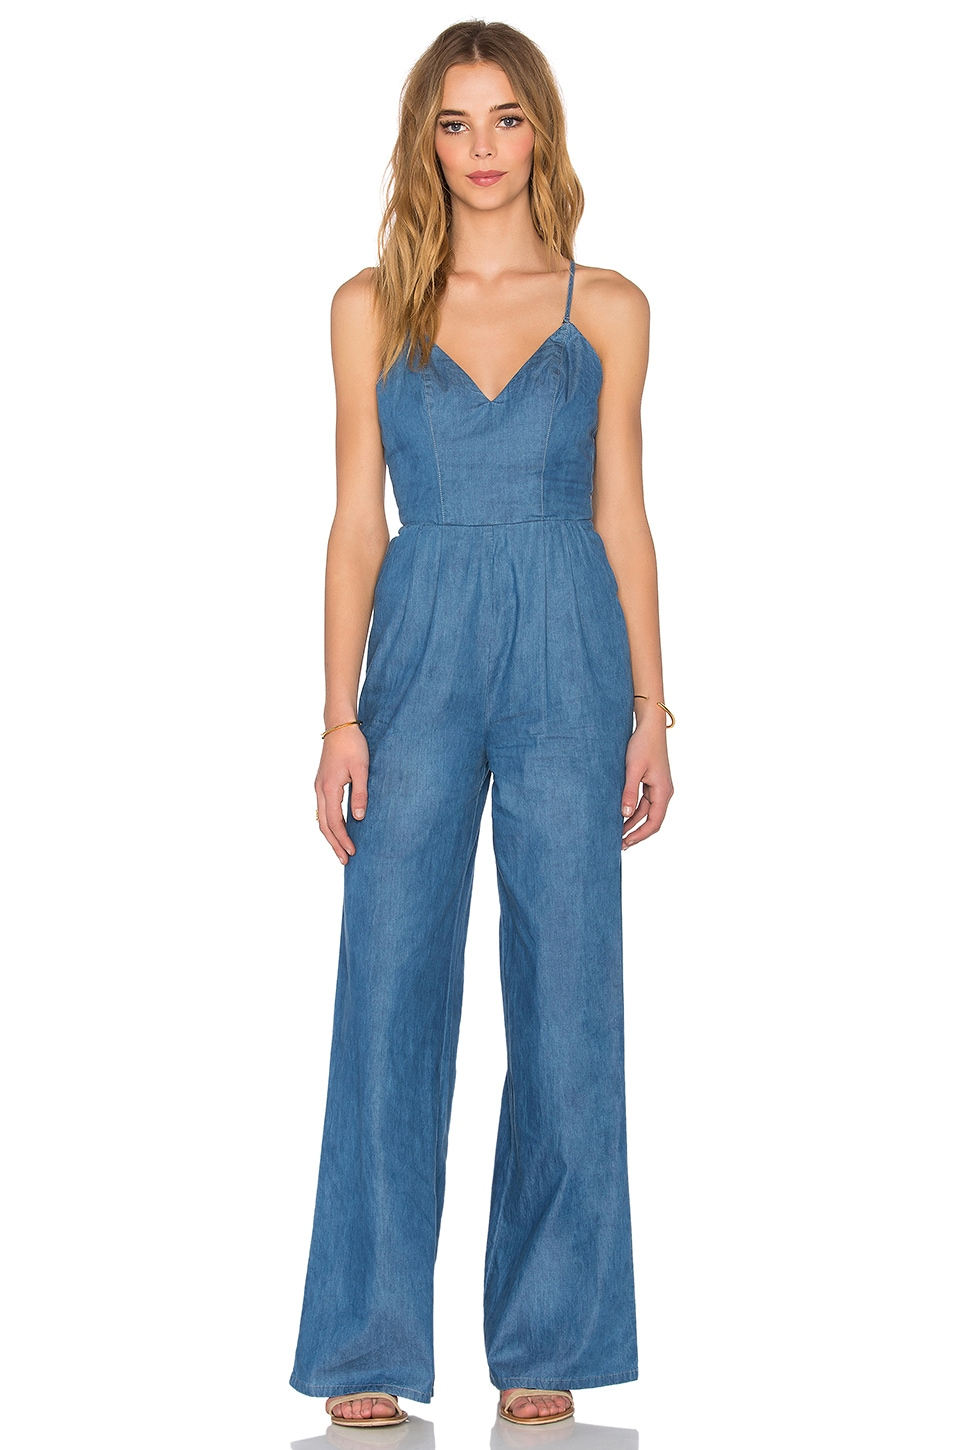 Lovers + Friends Cypress Jumpsuit in Lagoon Blue